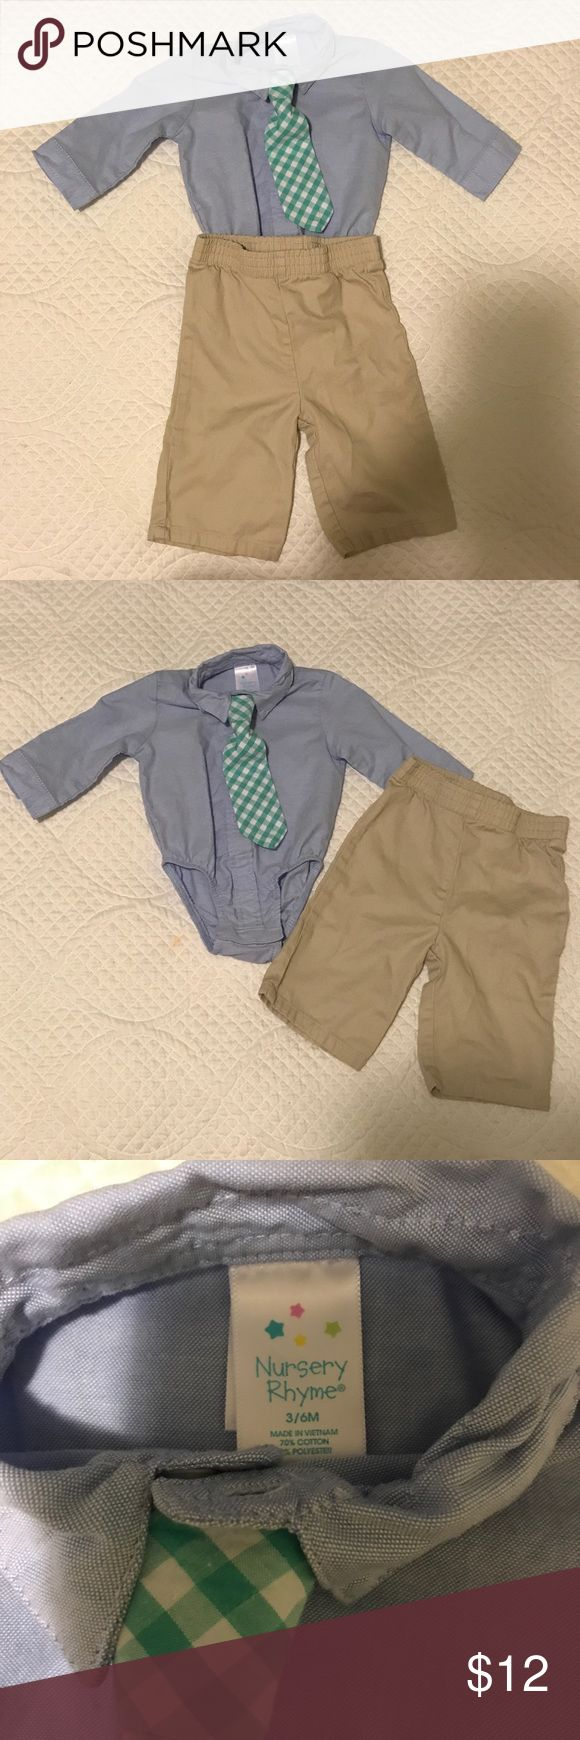 Nursery Rhyme 3 pc set baby boy size 3-6 mo Nursery Rhyme baby boy khaki and blue oxford with green and white tie set. Size 3 to 6 months, EUC, washed but never worn. Tie buttons on to shirt and is detachable, looks adorable with or without tie. So many possibilities with these pieces. $12 for the set, perfect outfit to wear to church or a wedding! Smoke free home. Nursery Rhyme Matching Sets